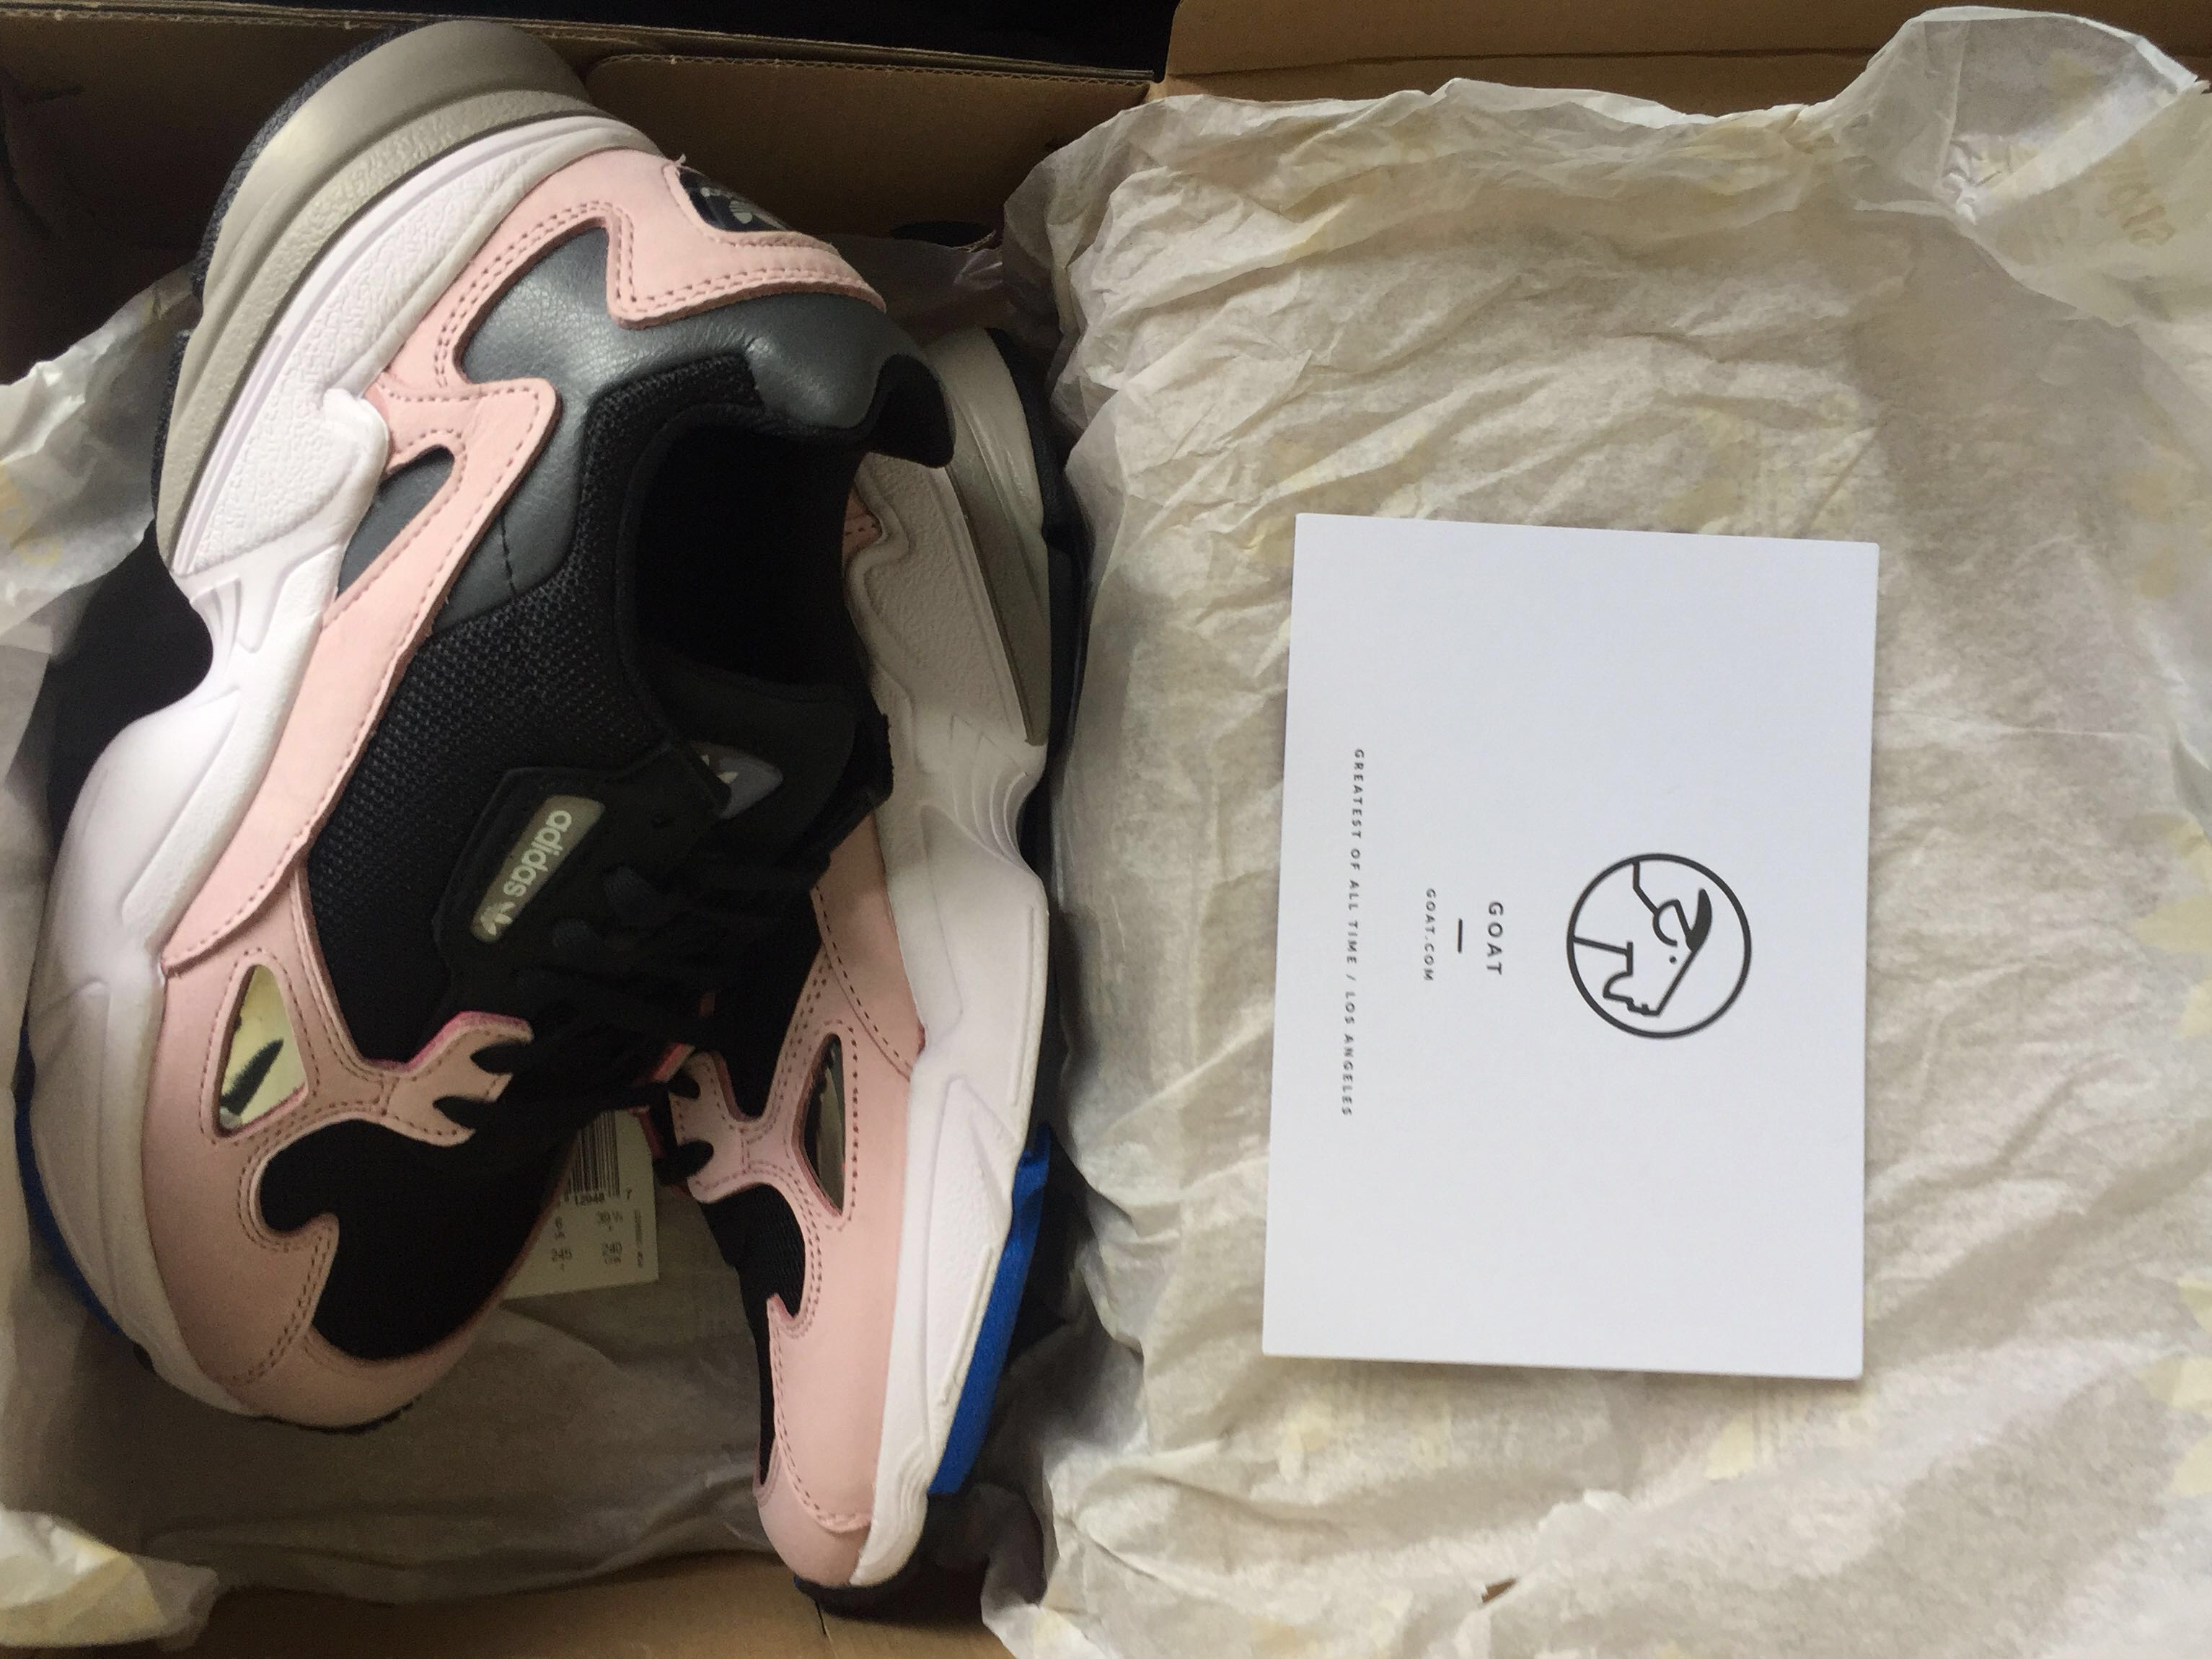 factory authentic 99711 886d1 Adidas Falcon X Kylie Jenner Brand New In Box